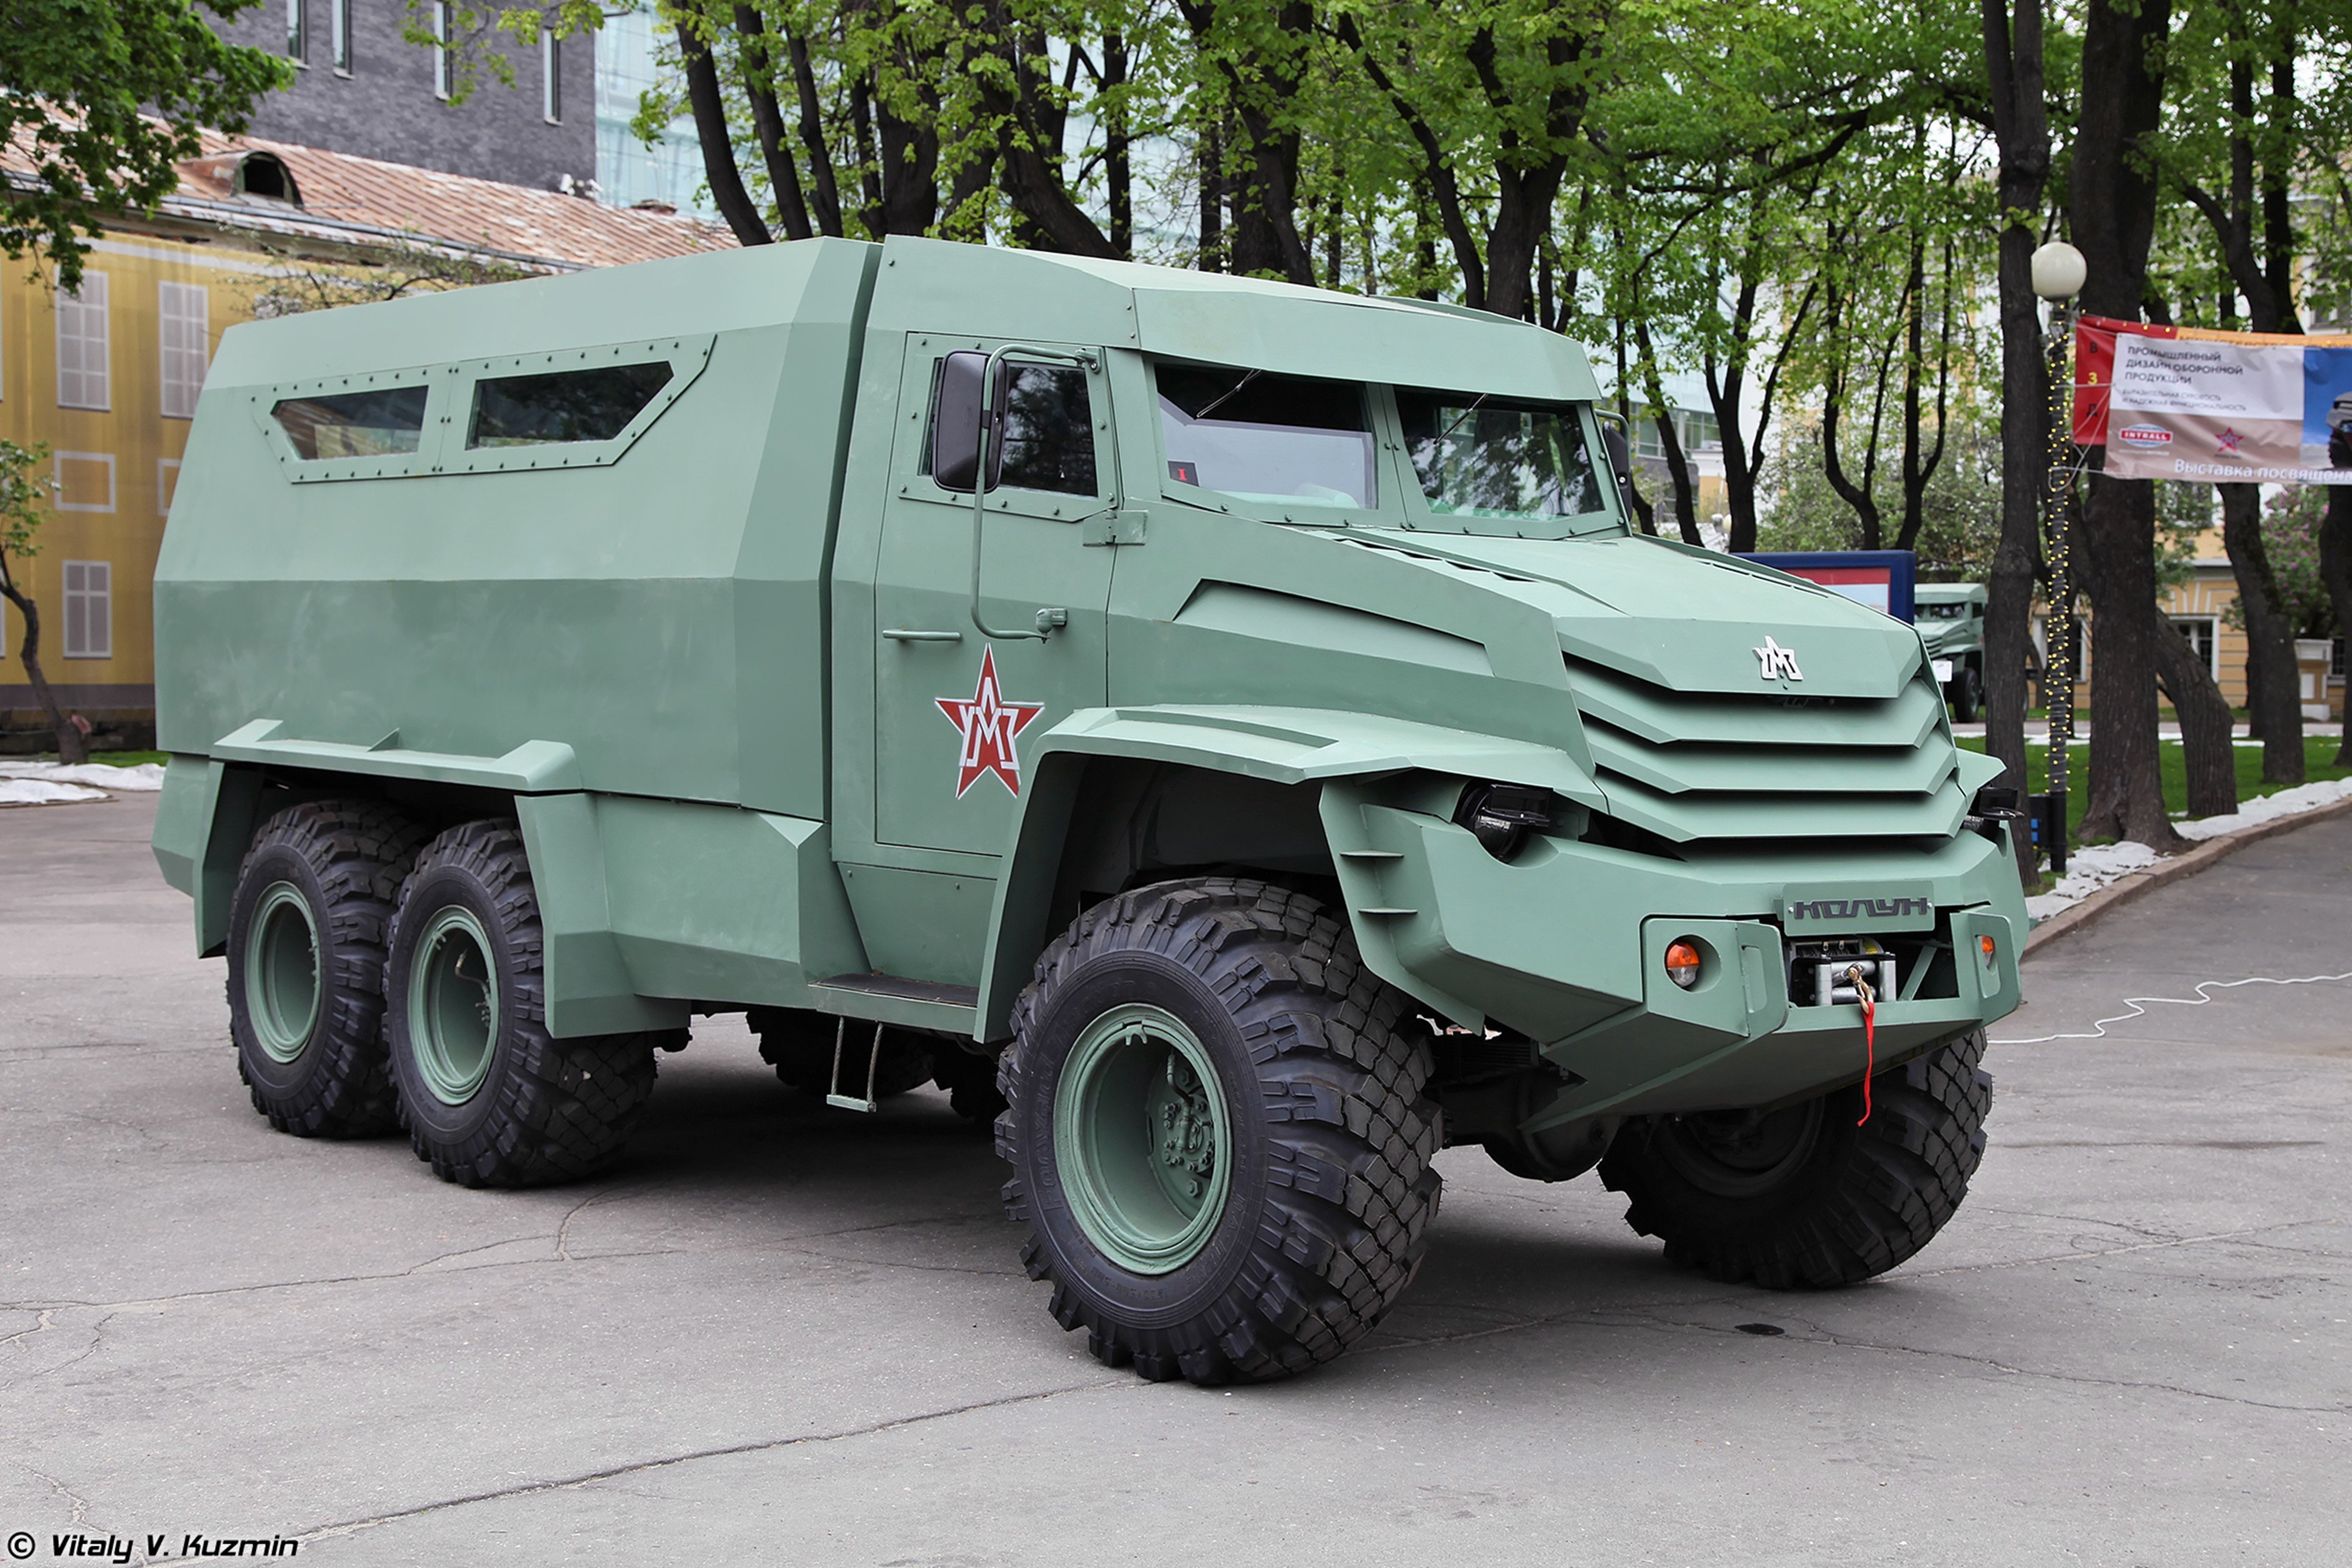 6x6 Armored Vehicle For Sale.html | Autos Post